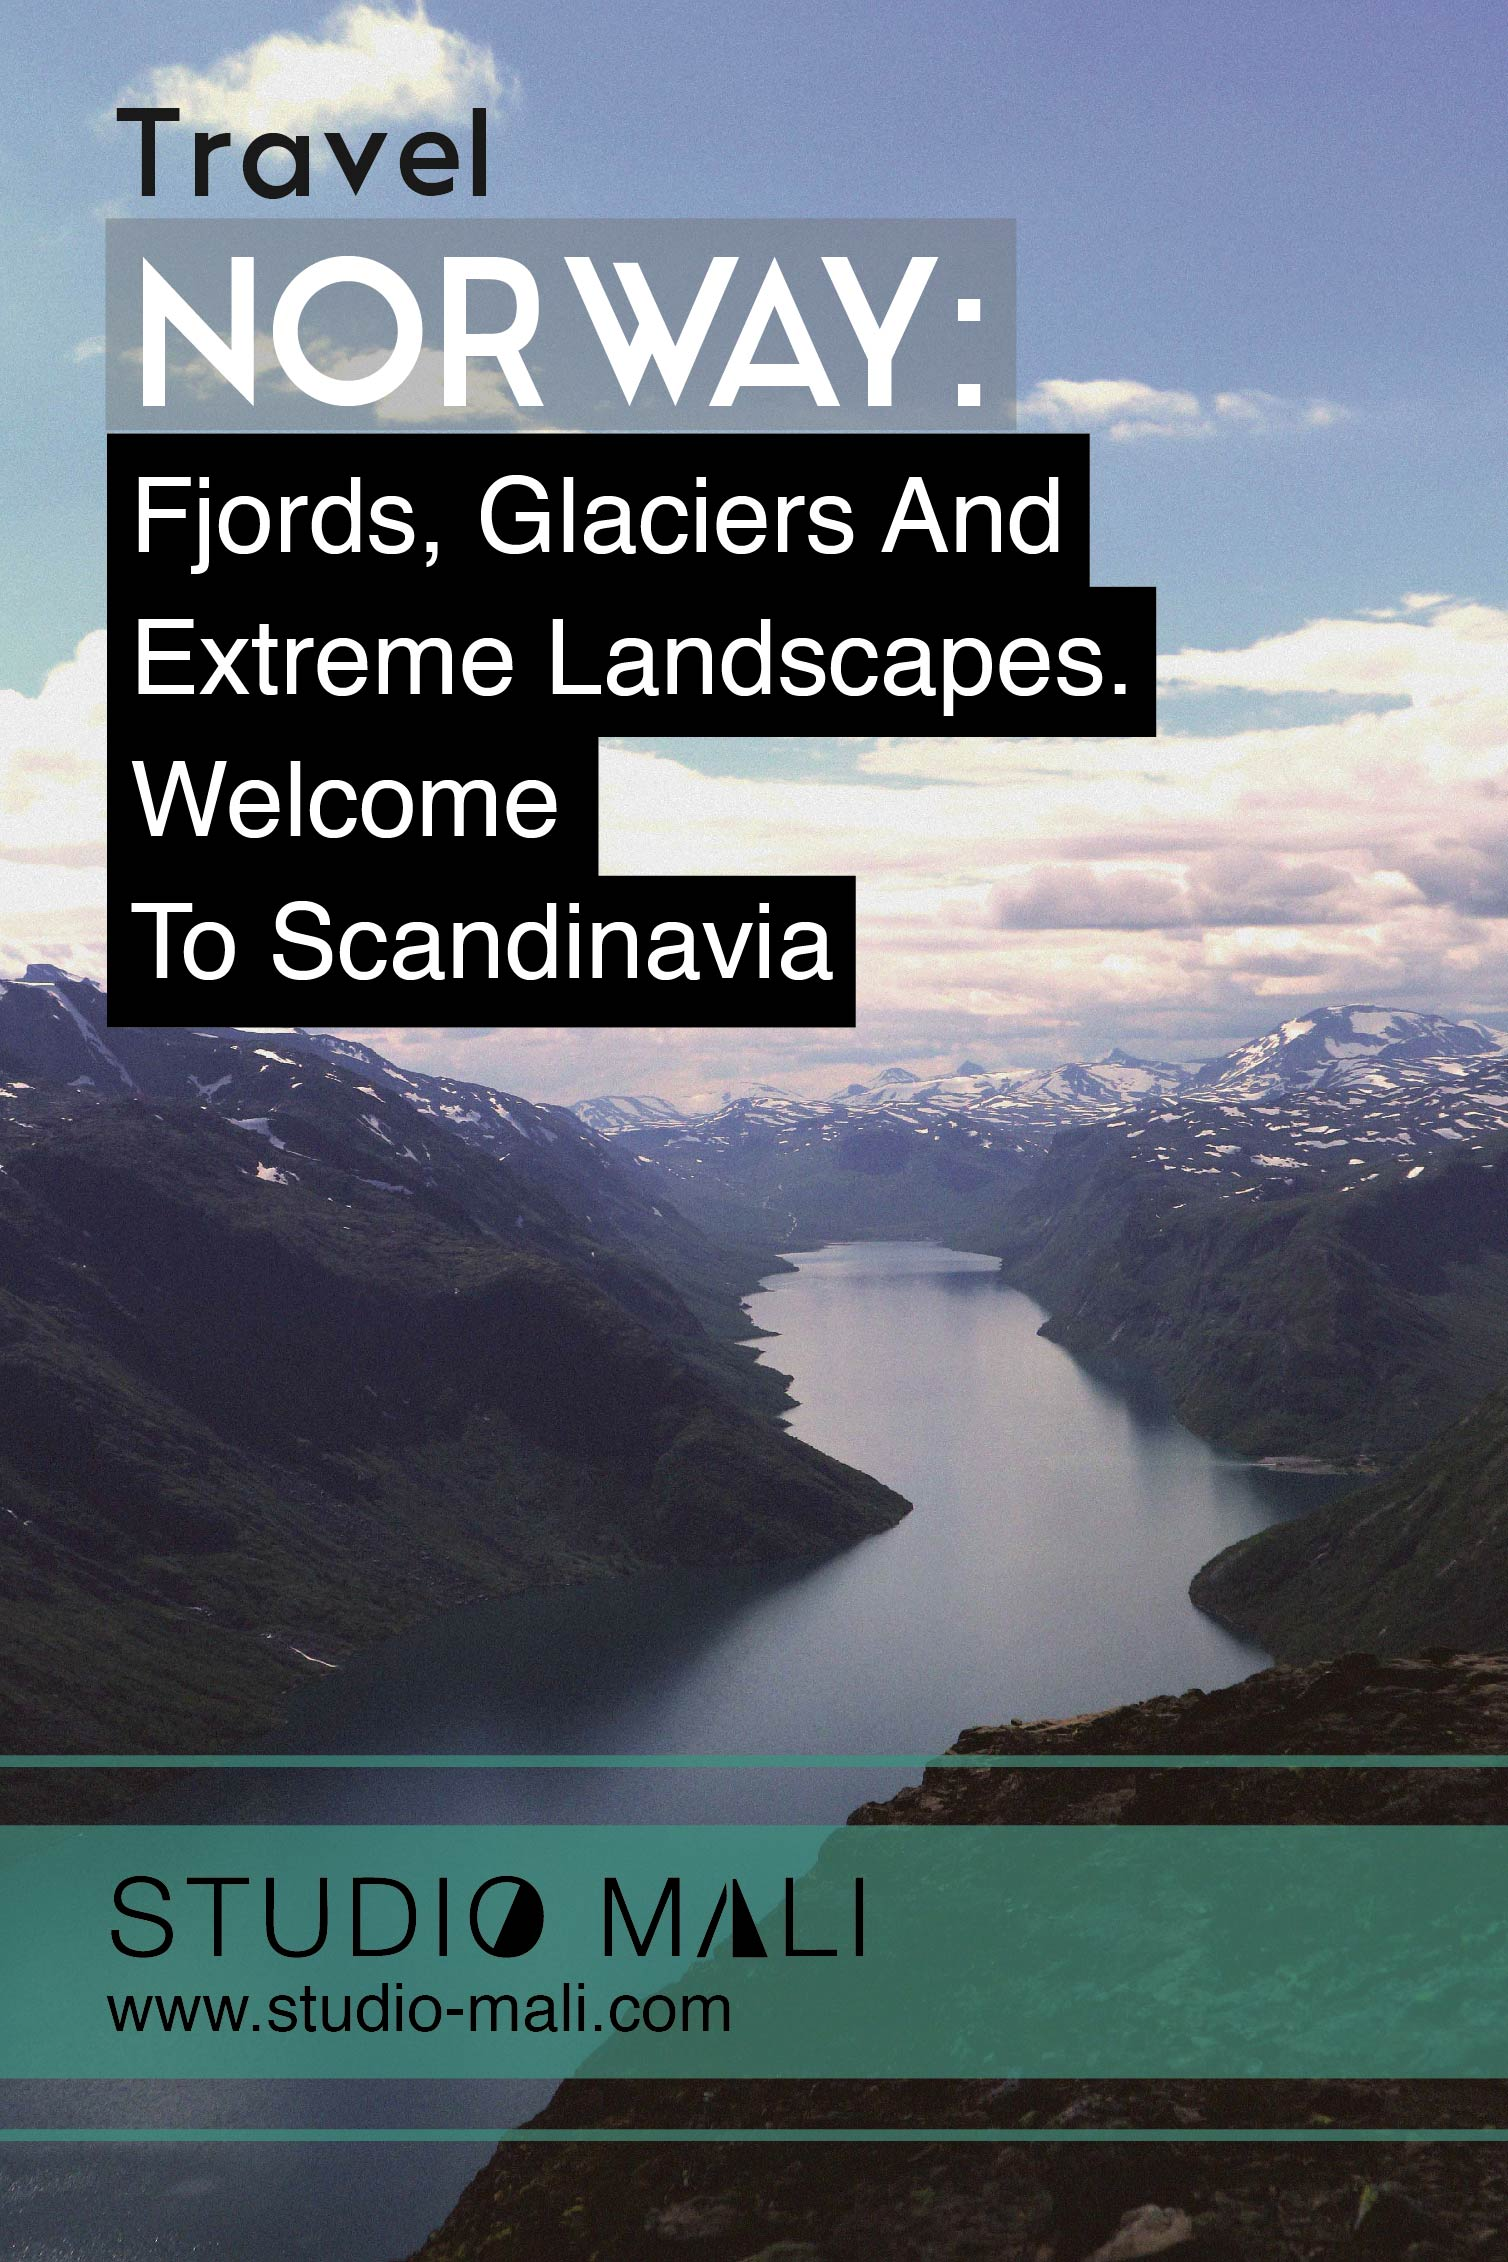 Norway - Fjords, Glaciers And Extreme Landscapes, by Studio Mali.jpg